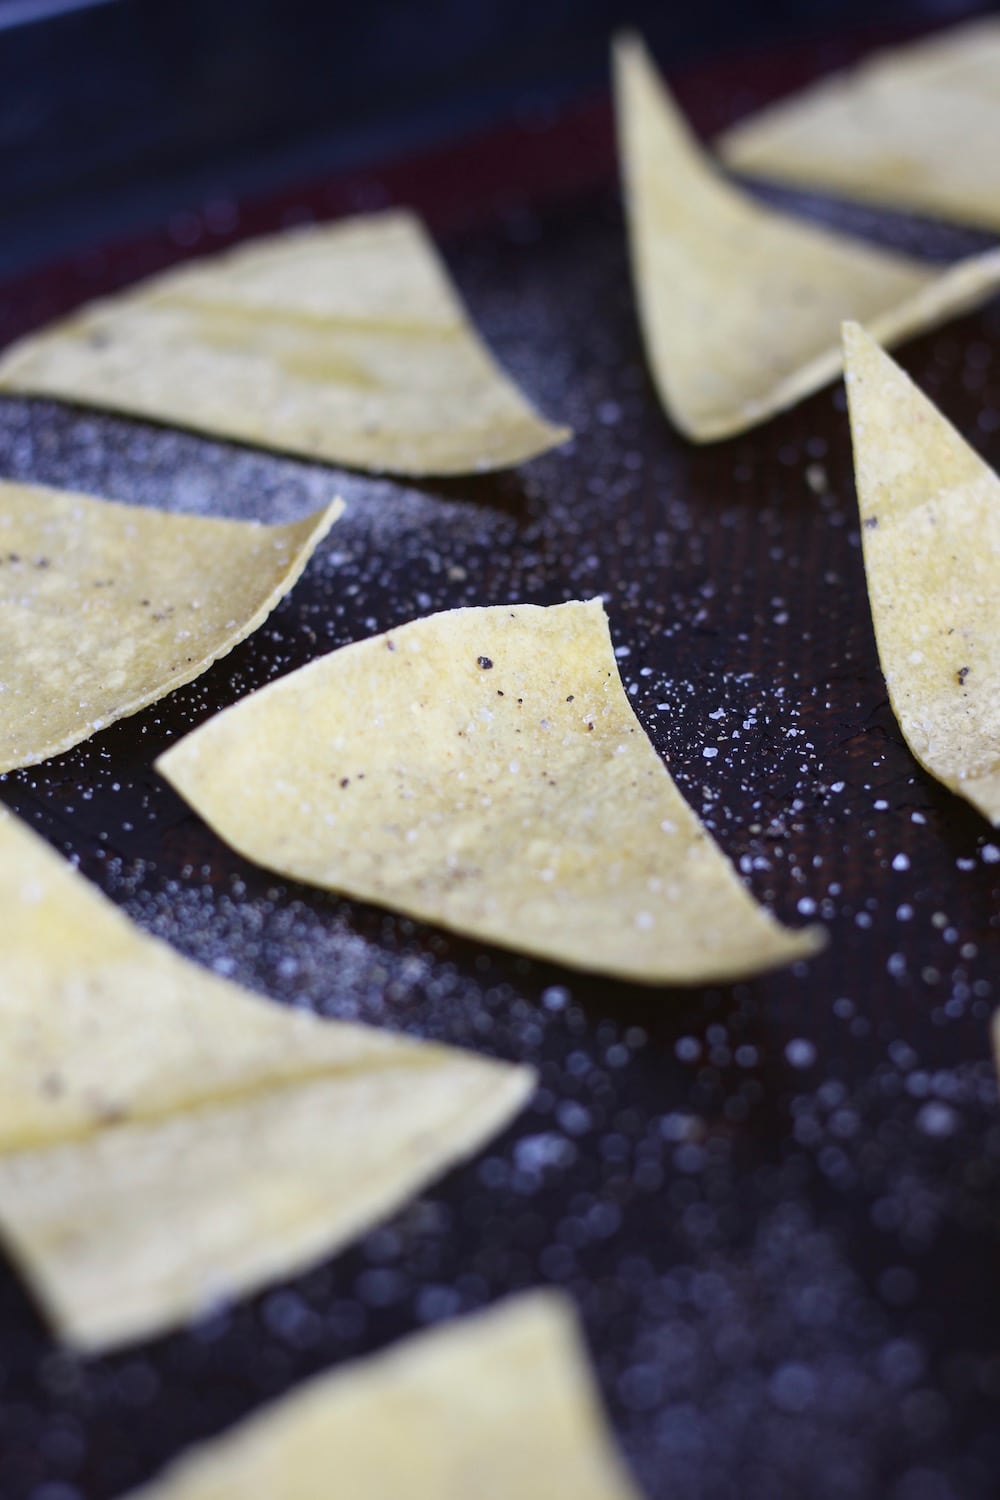 Tortilla chips being baked in the oven